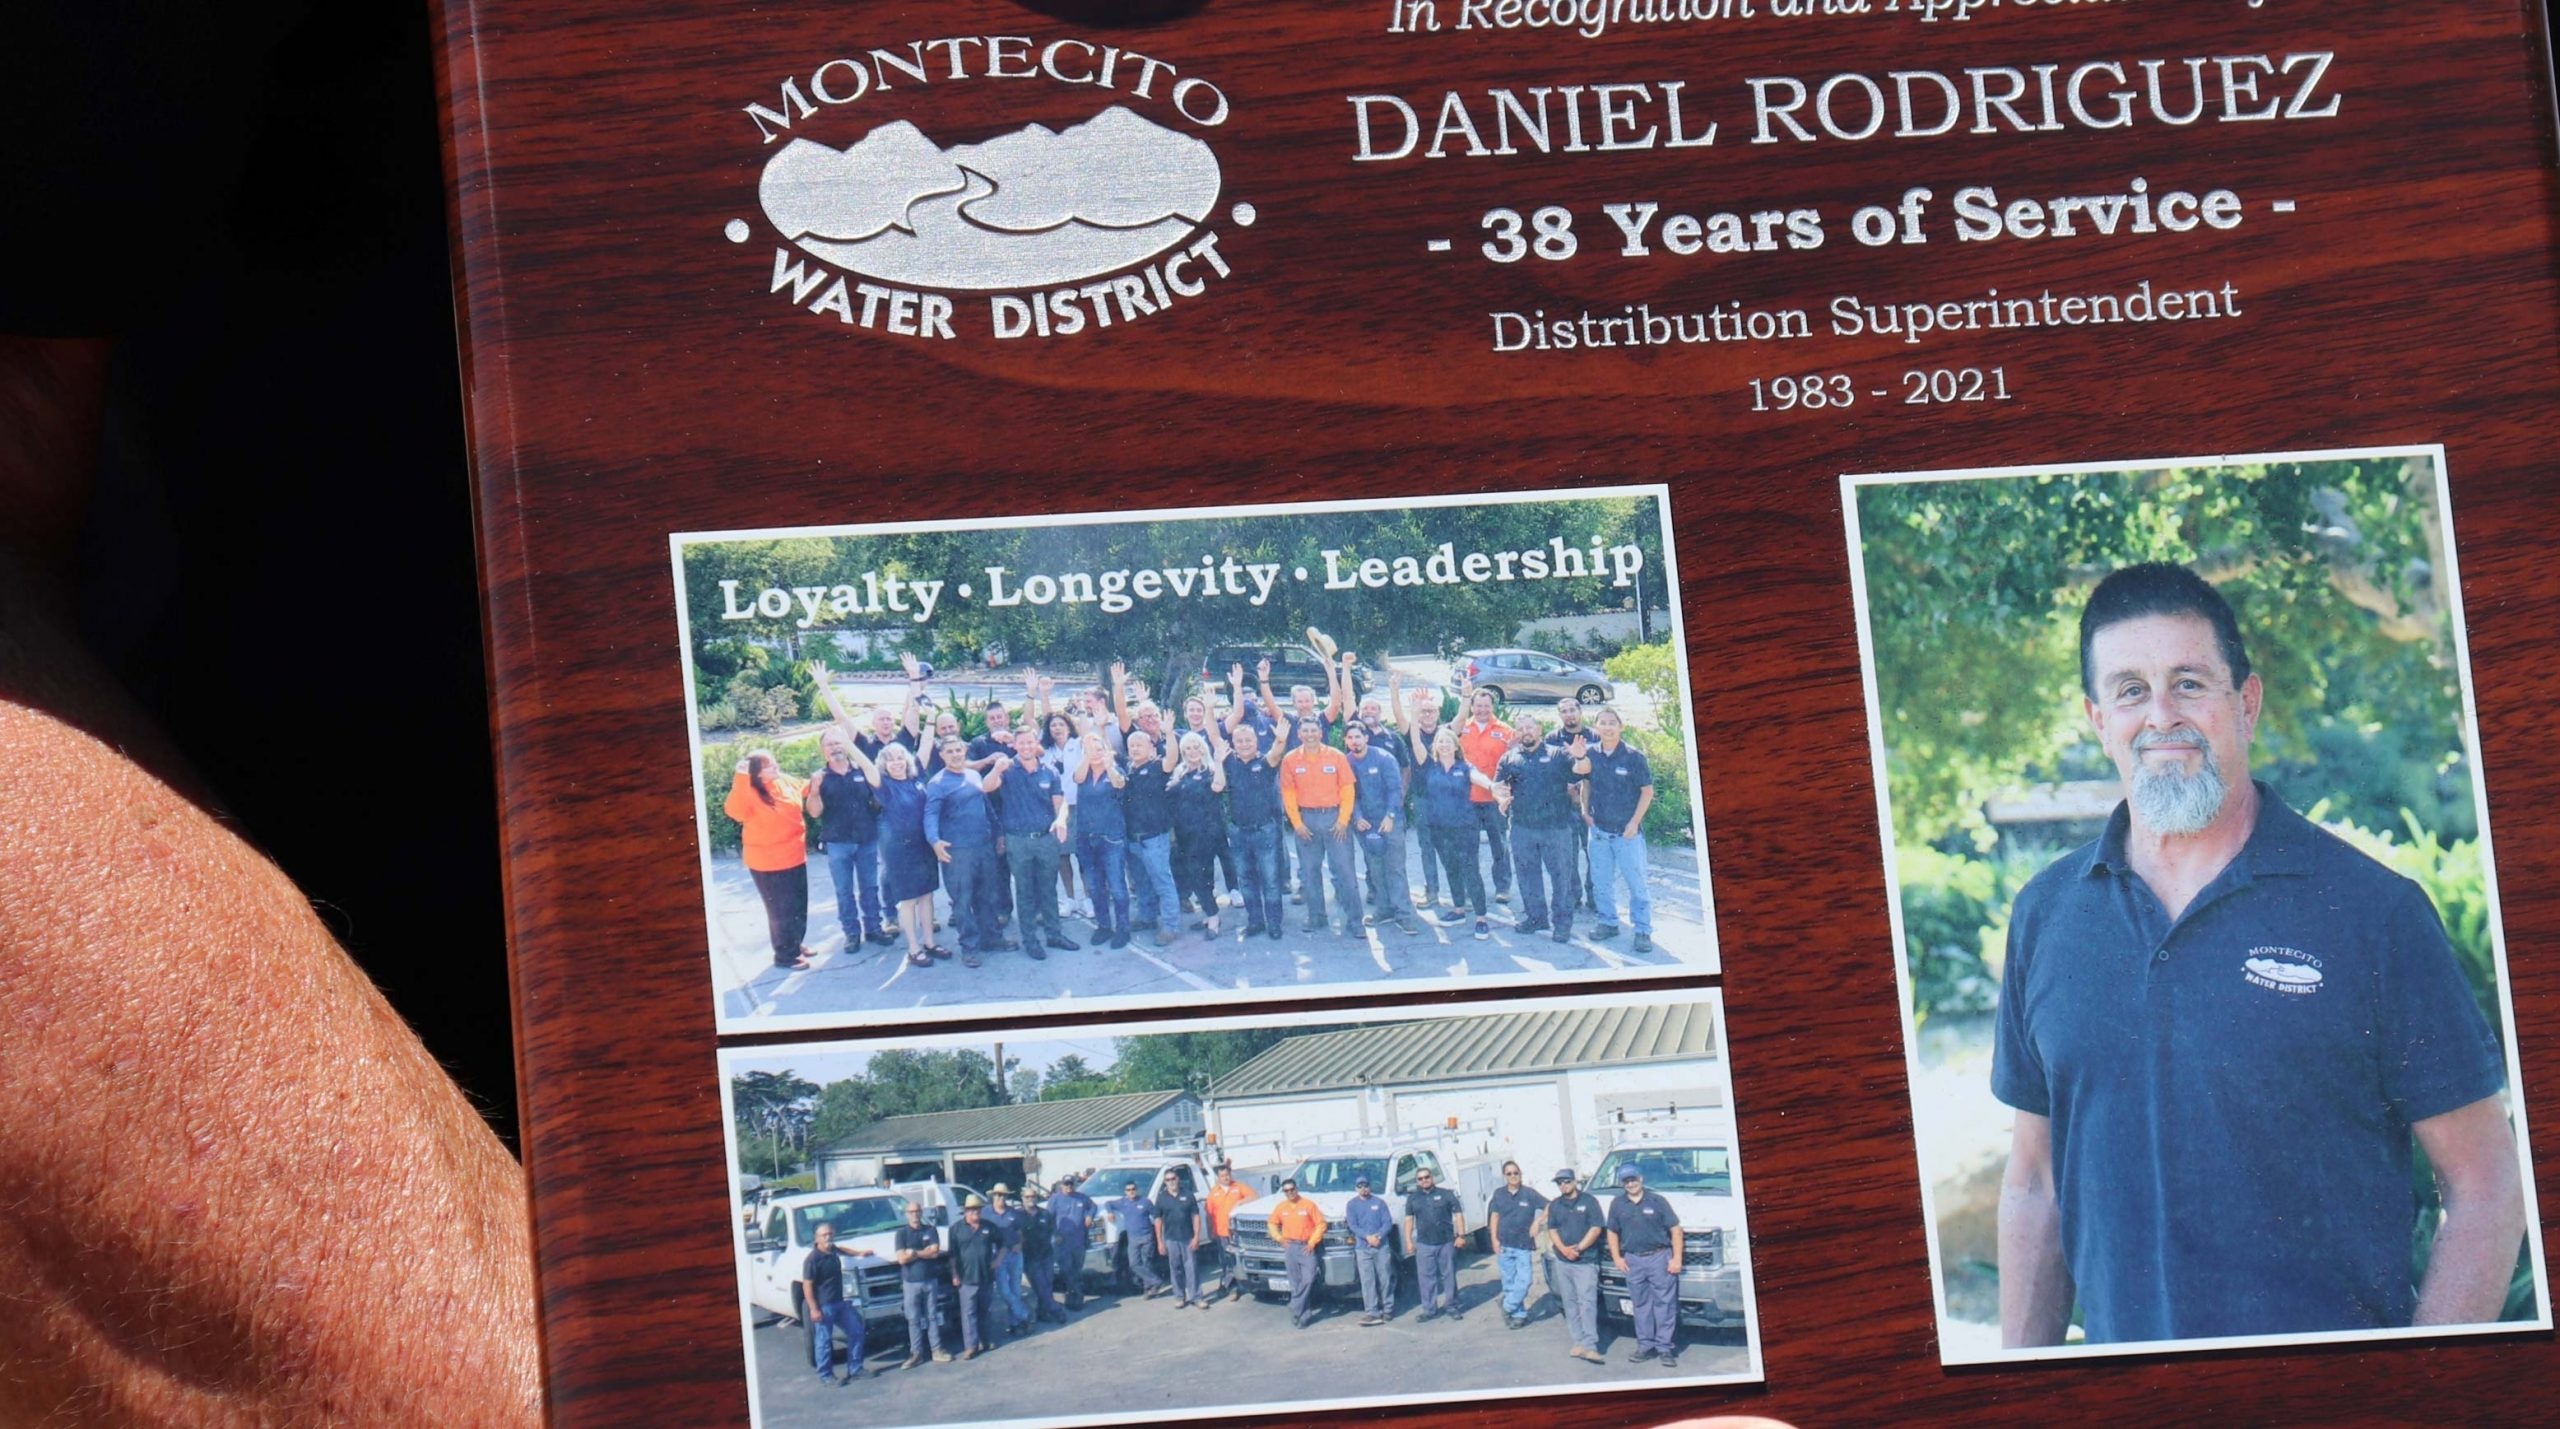 Distribution Superintendent Daniel Rodriguez holding plaque commemorating his retirement and 38 years of service.